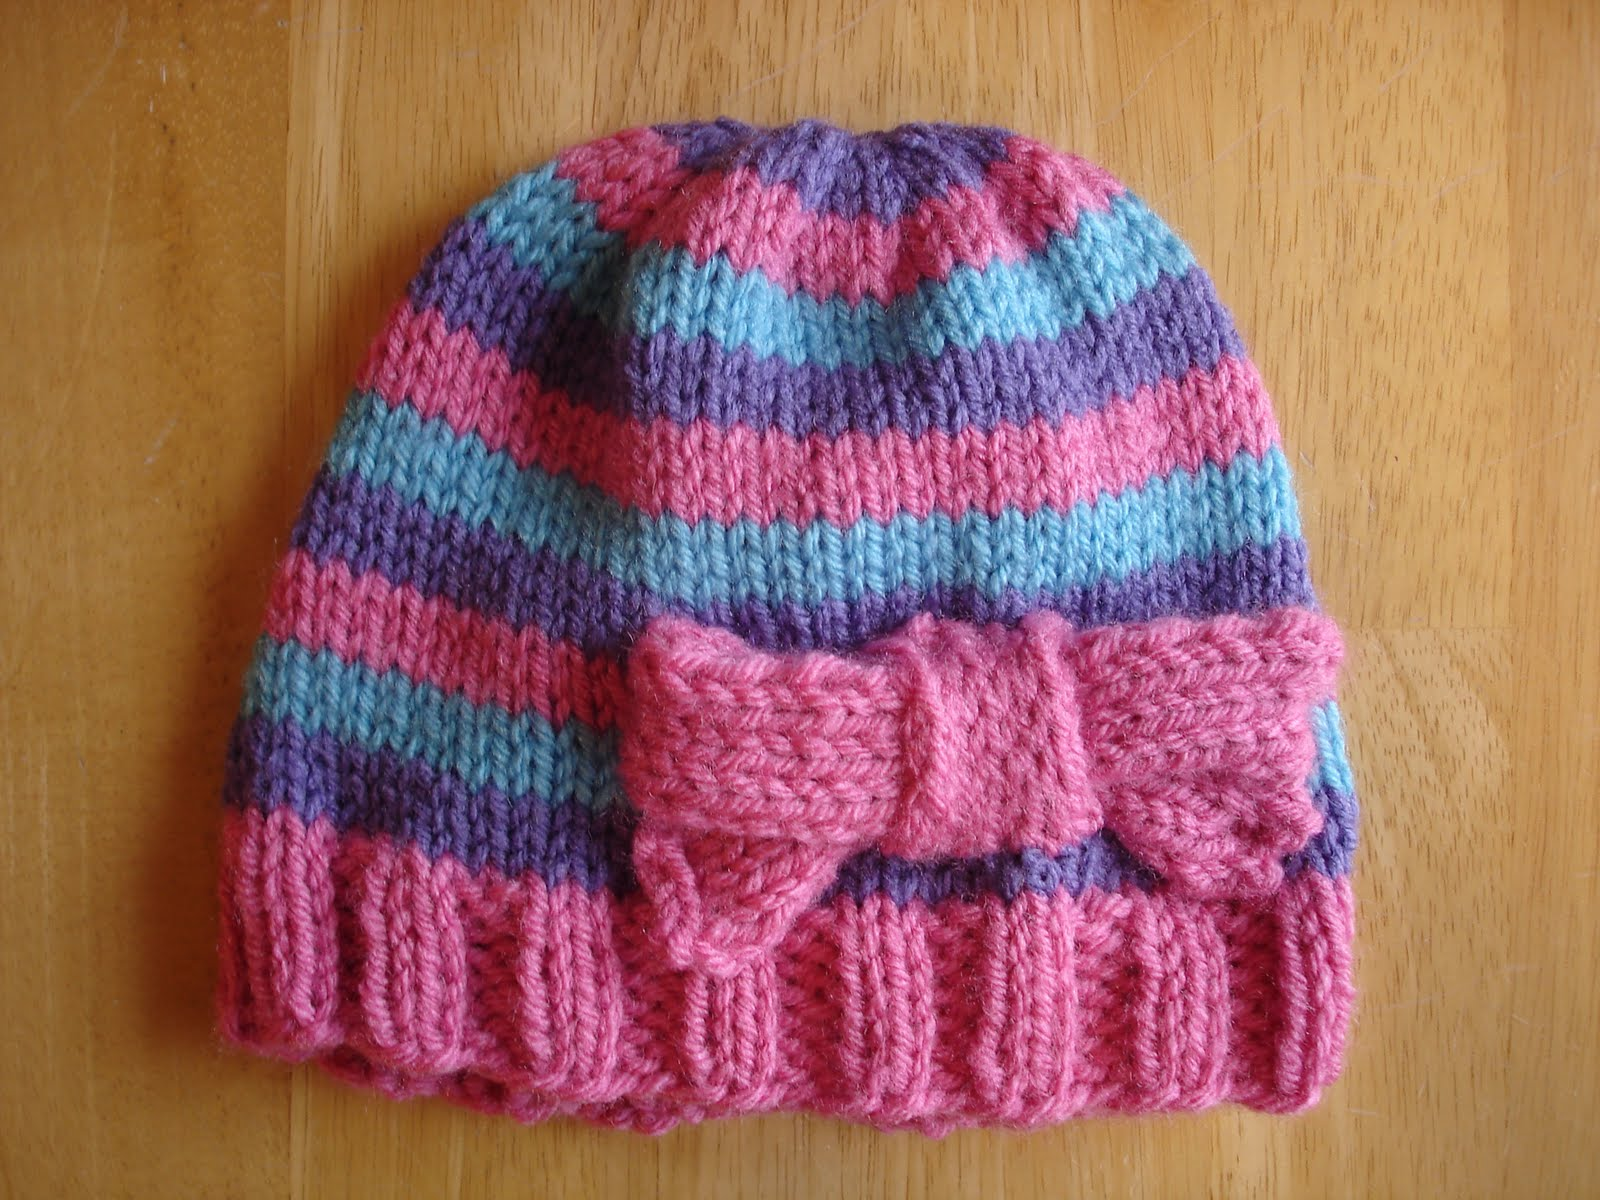 Simple Knit Hat Pattern Free : Free Knitting Patterns Hats Search Results Calendar 2015